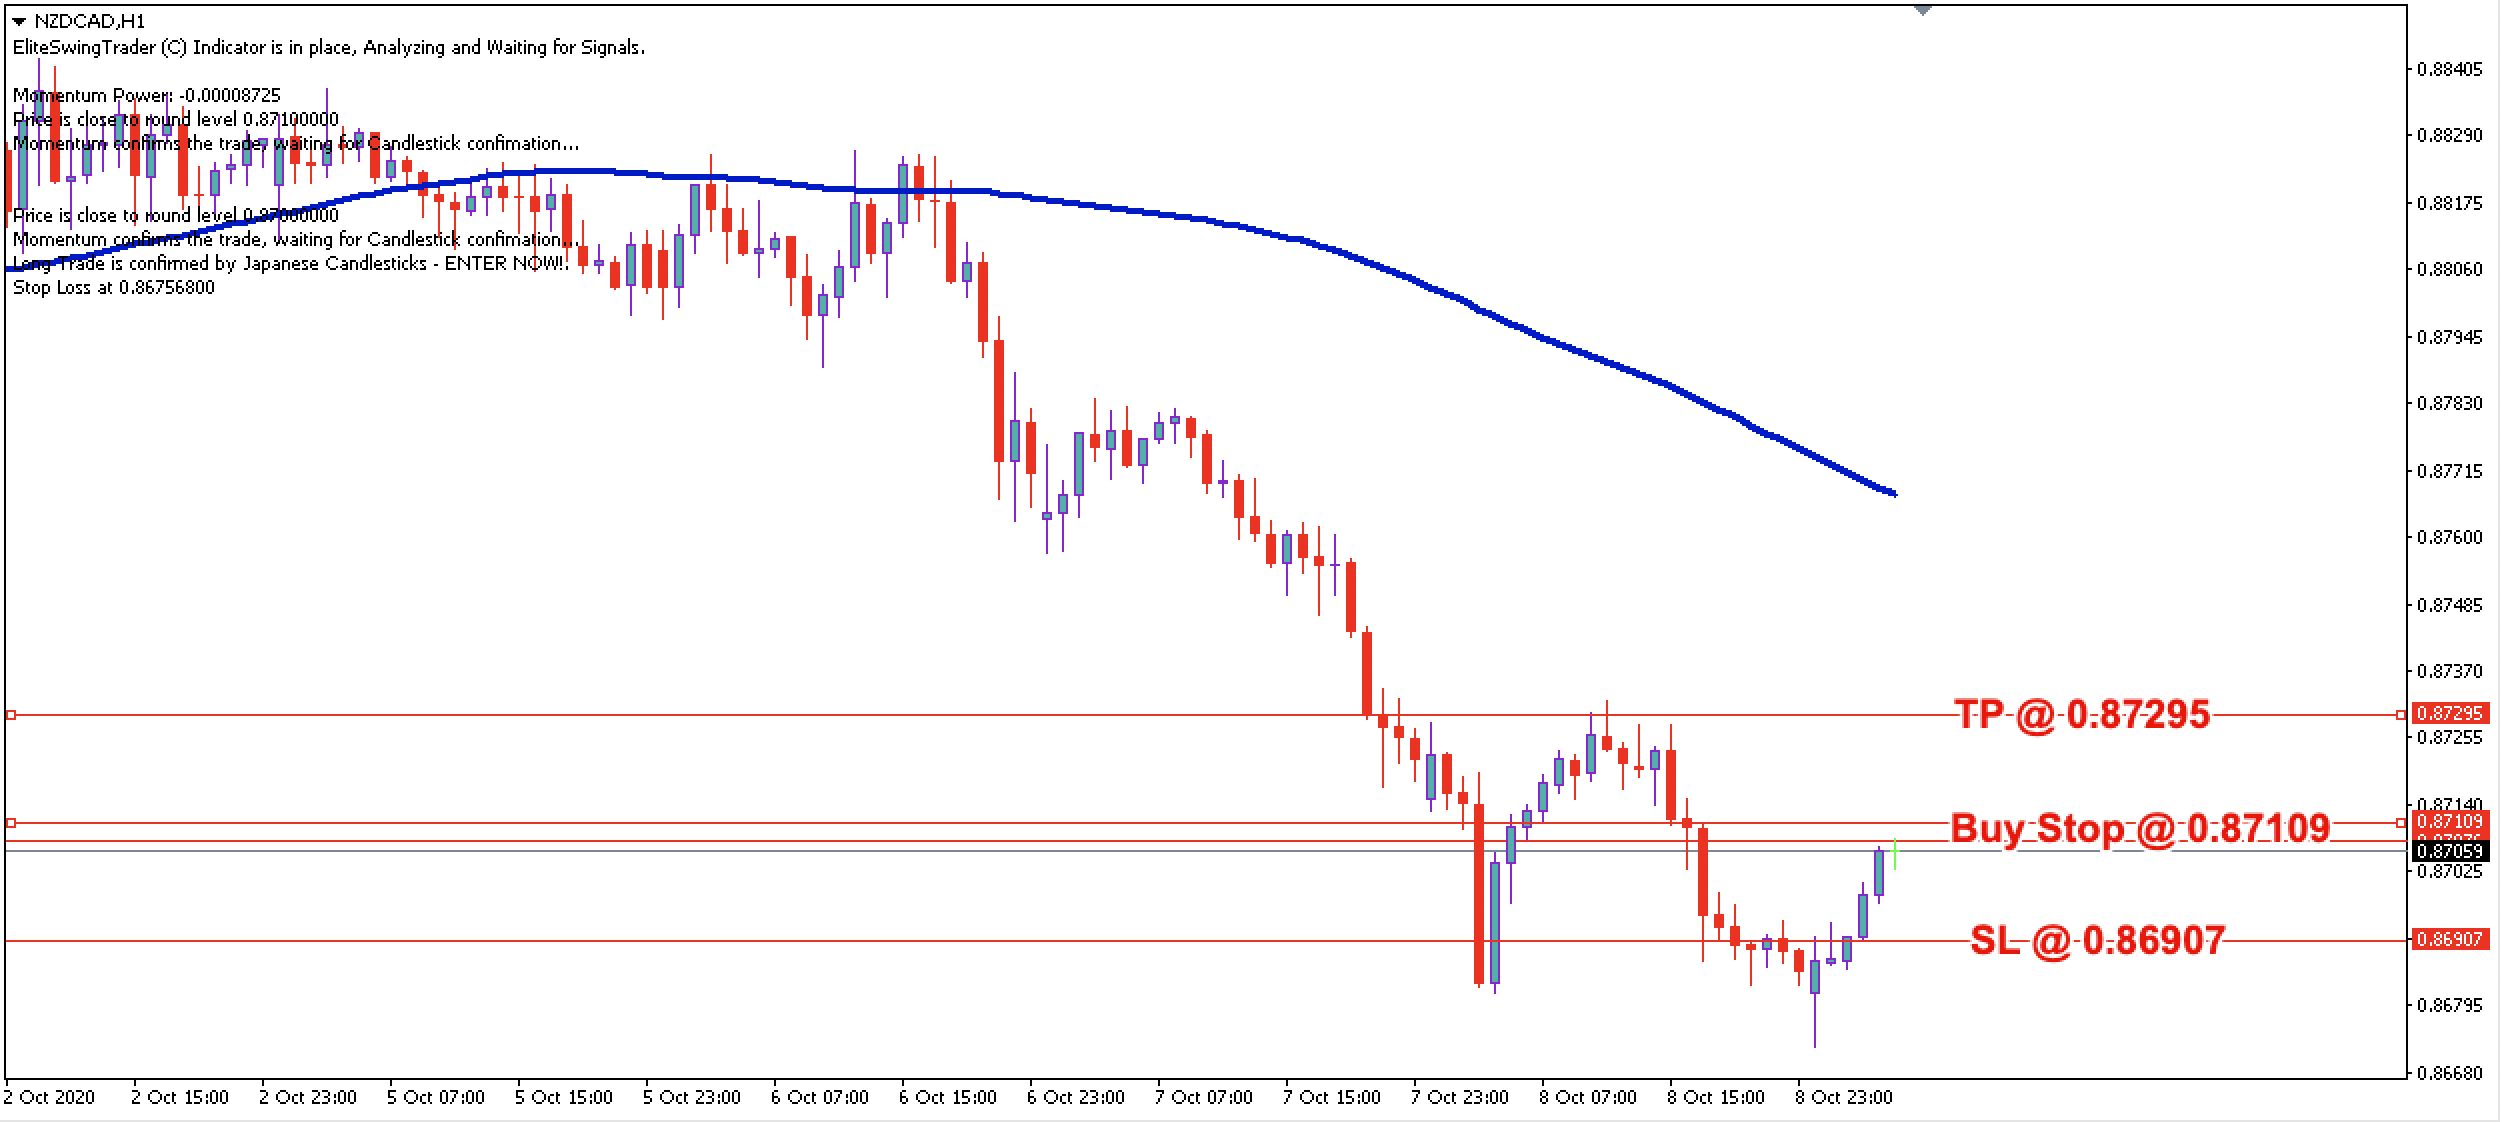 NZD/CAD Daily Price Forecast - 9th Oct 2020